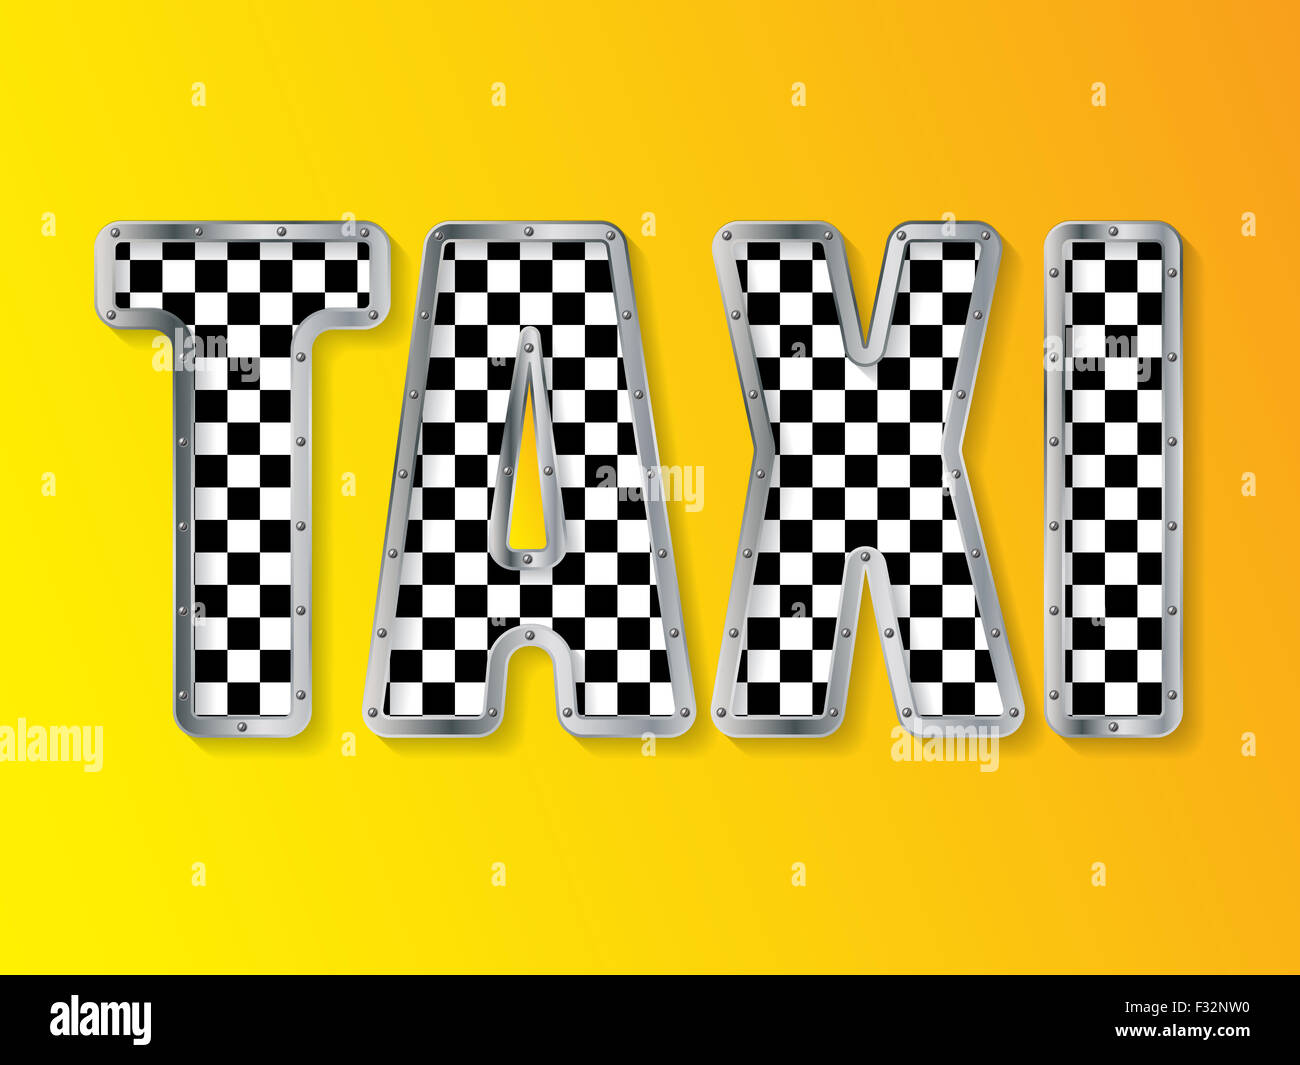 Abstract taxi company advertising background with metallic framed ...